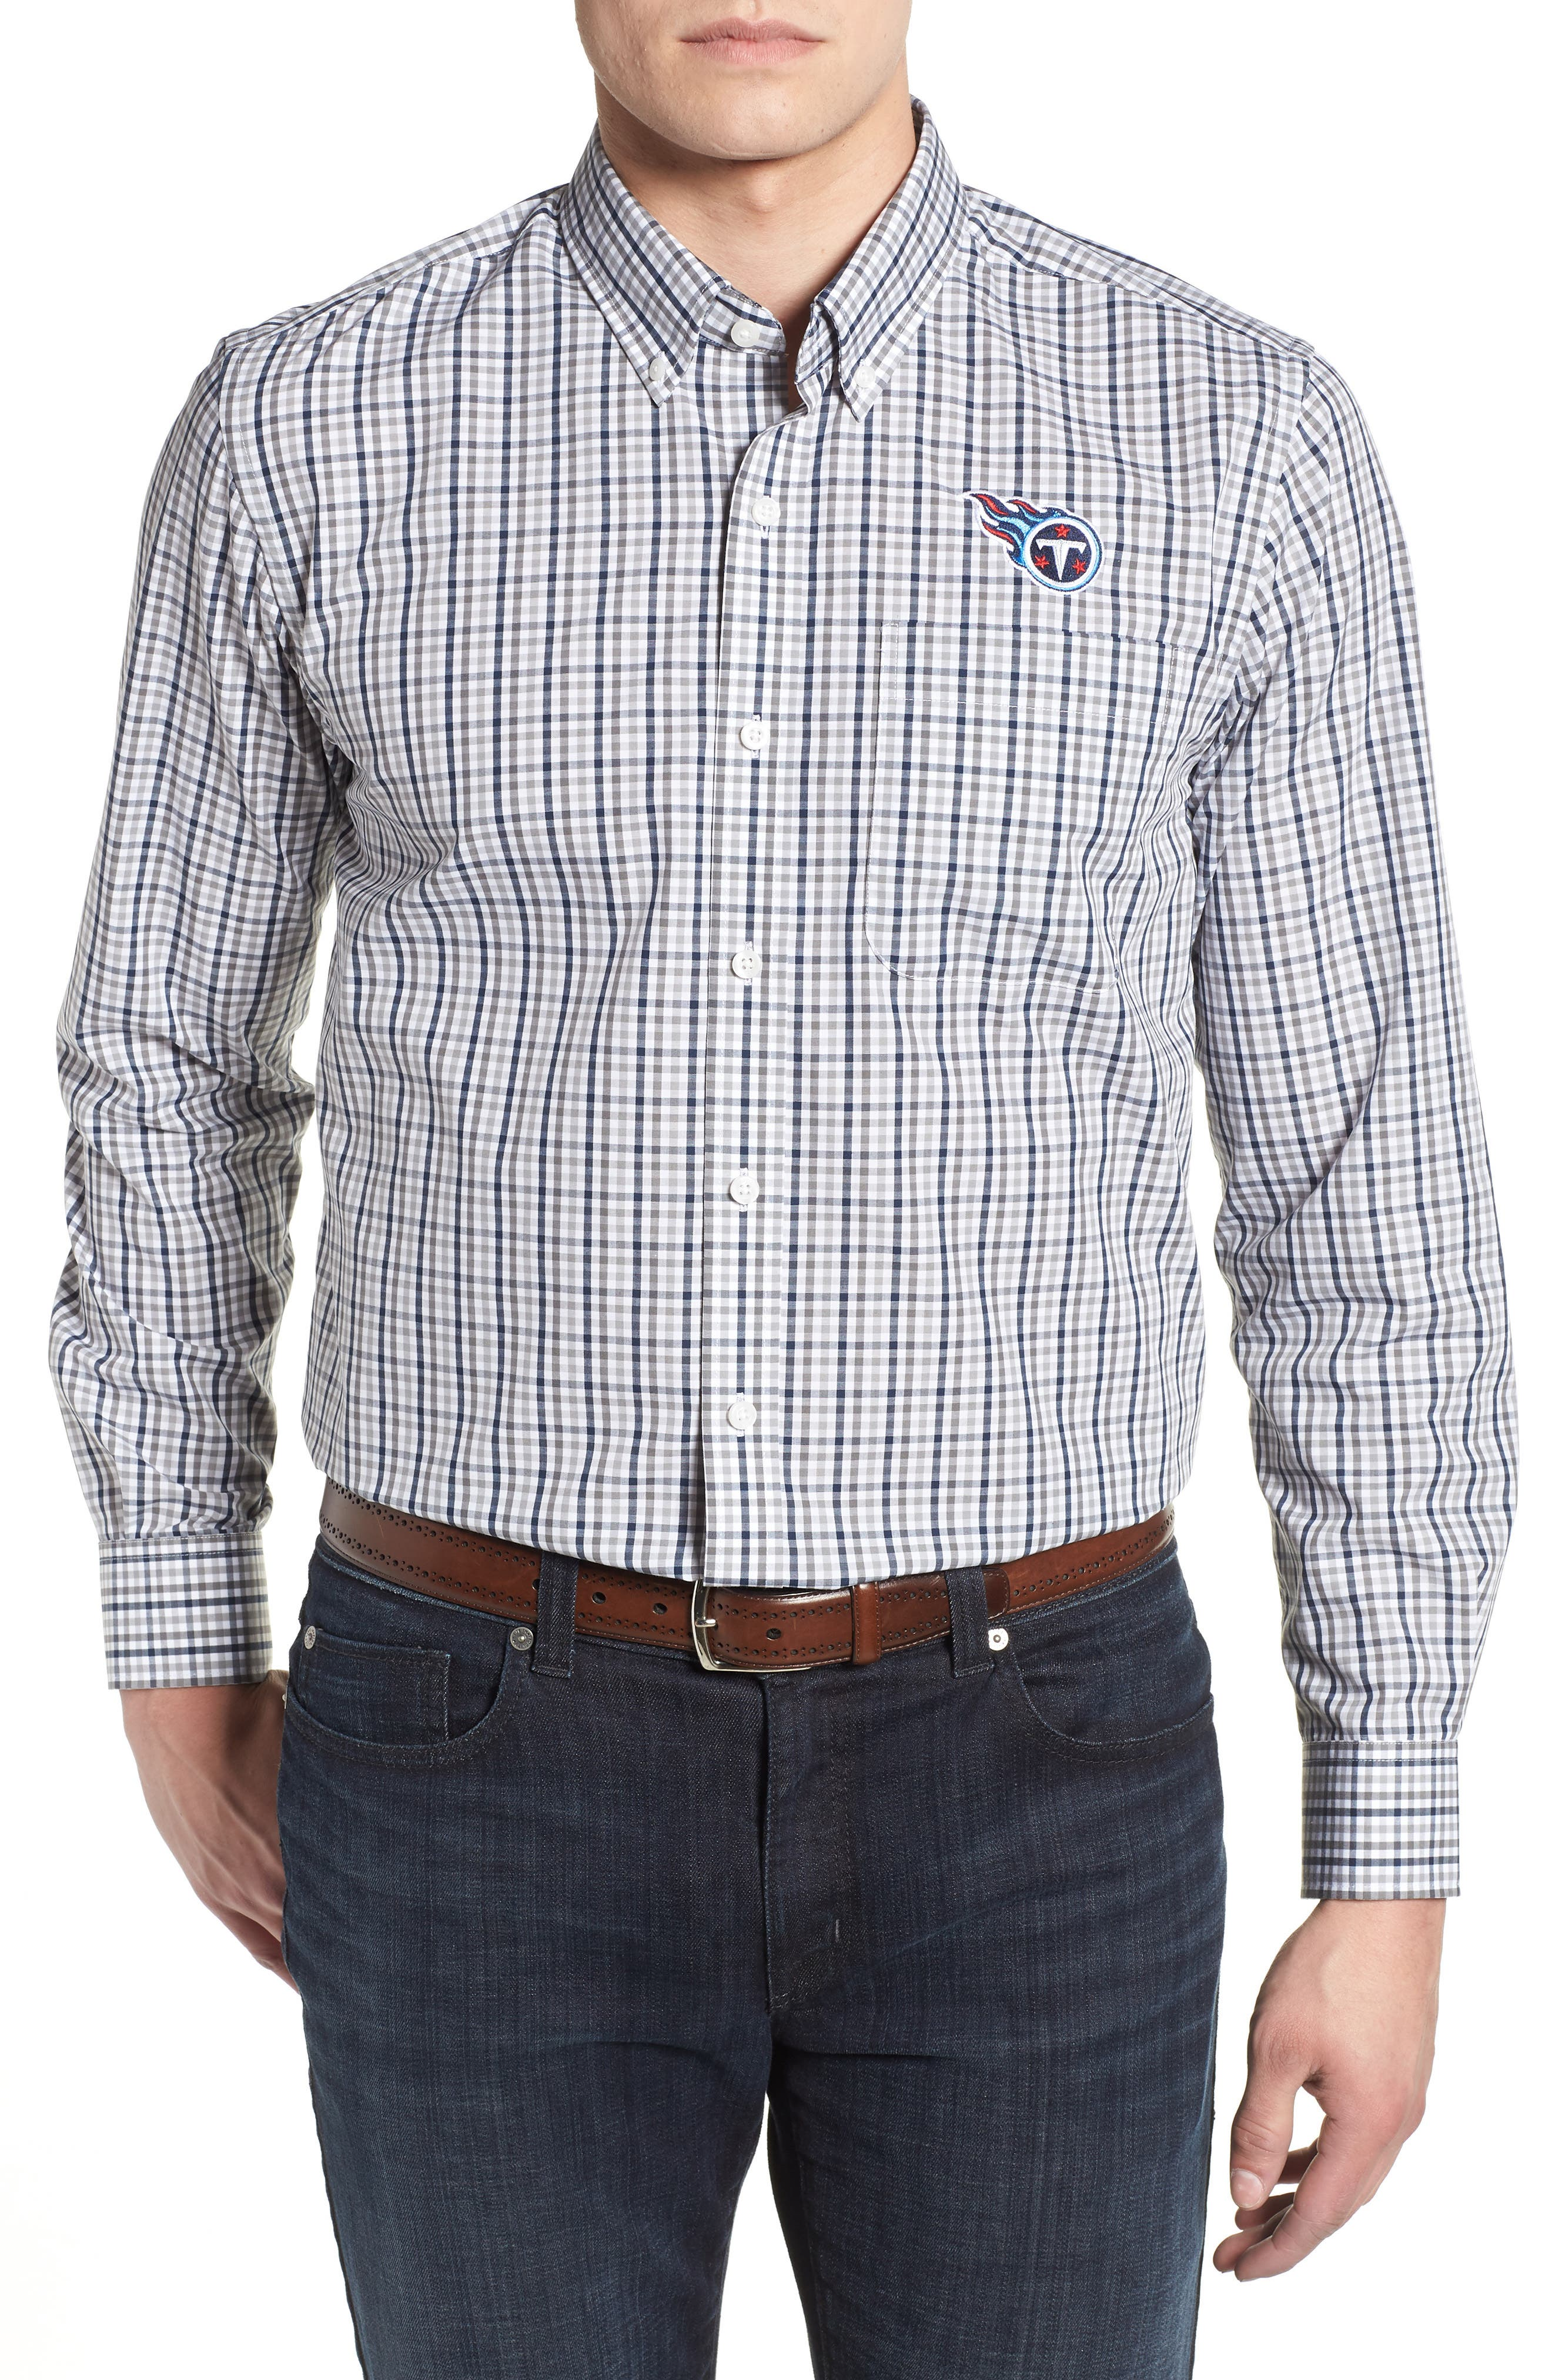 Tennessee Titans - Gilman Regular Fit Plaid Sport Shirt,                         Main,                         color, LIBERTY NAVY